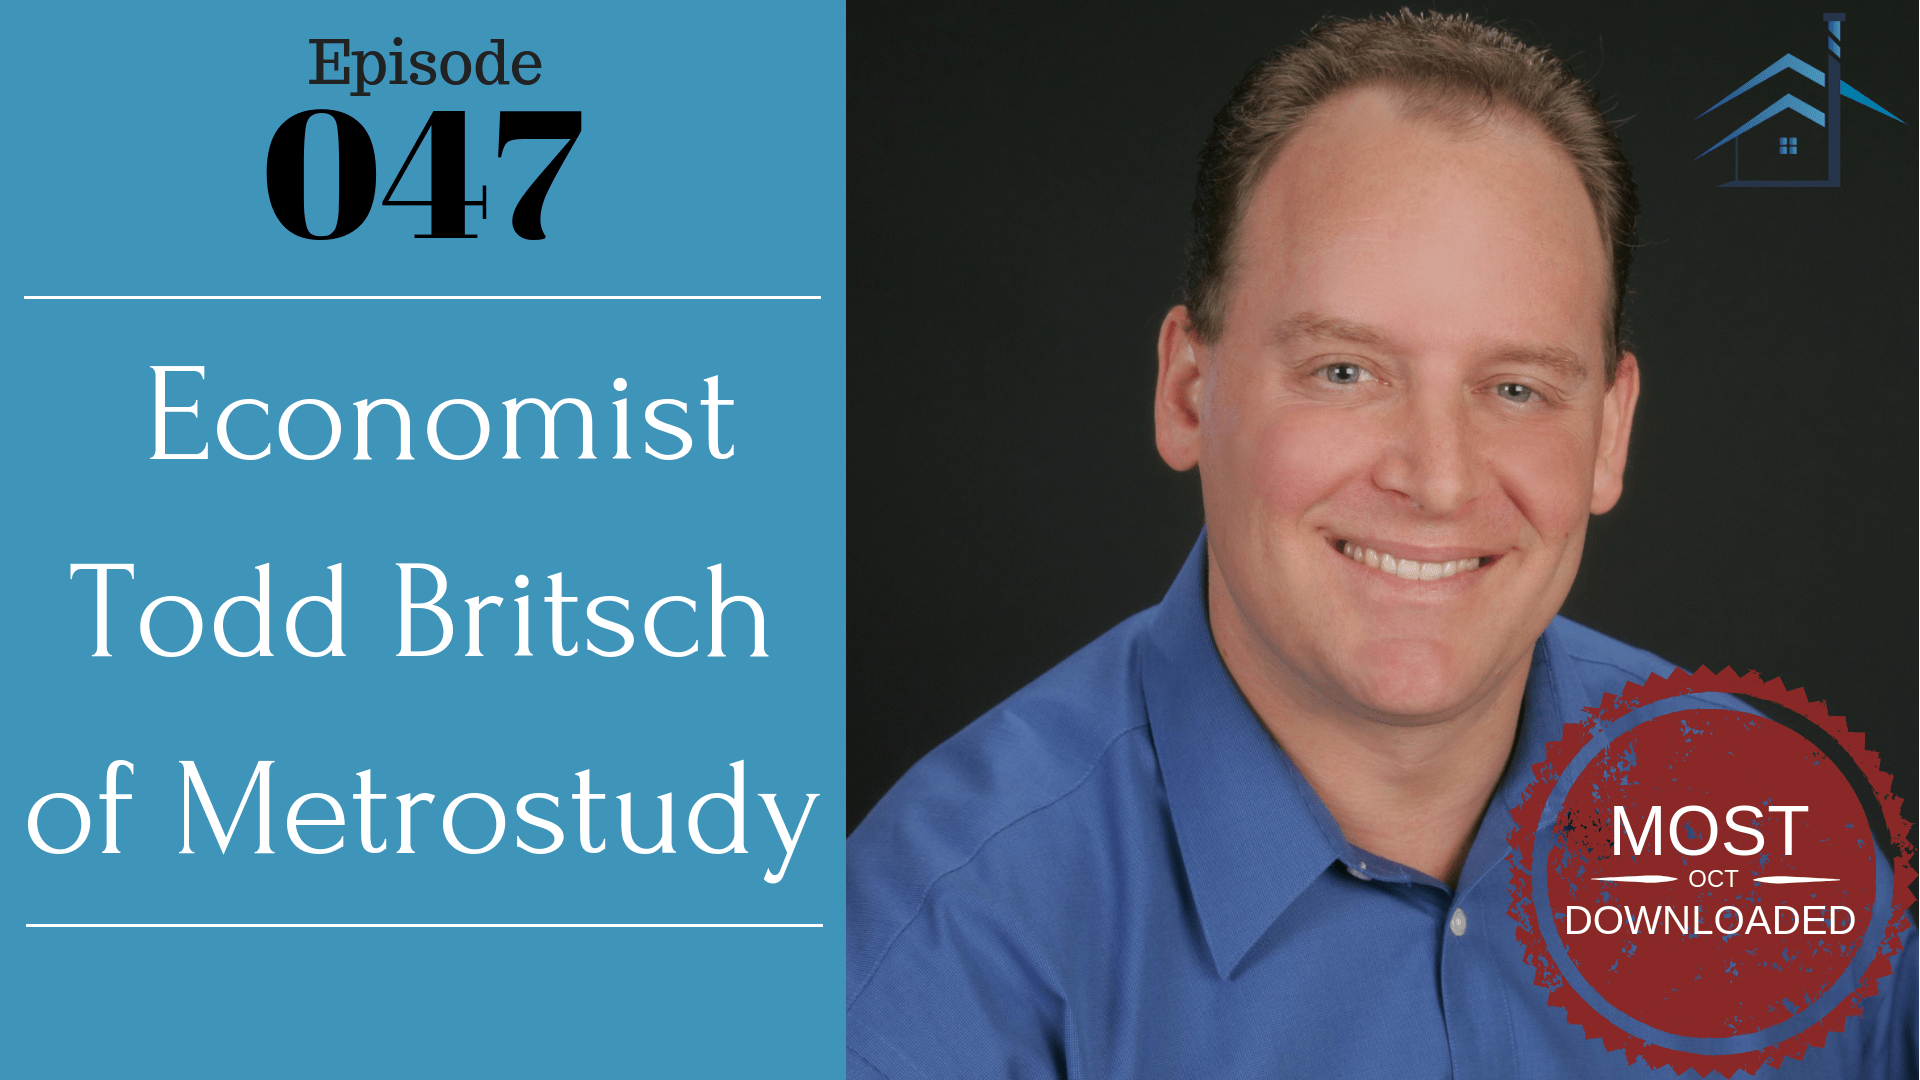 Top Downloaded Podcasts in October 2018 Economist Todd Britsch of Metrostudy with Julie Clark and Joe Bauer